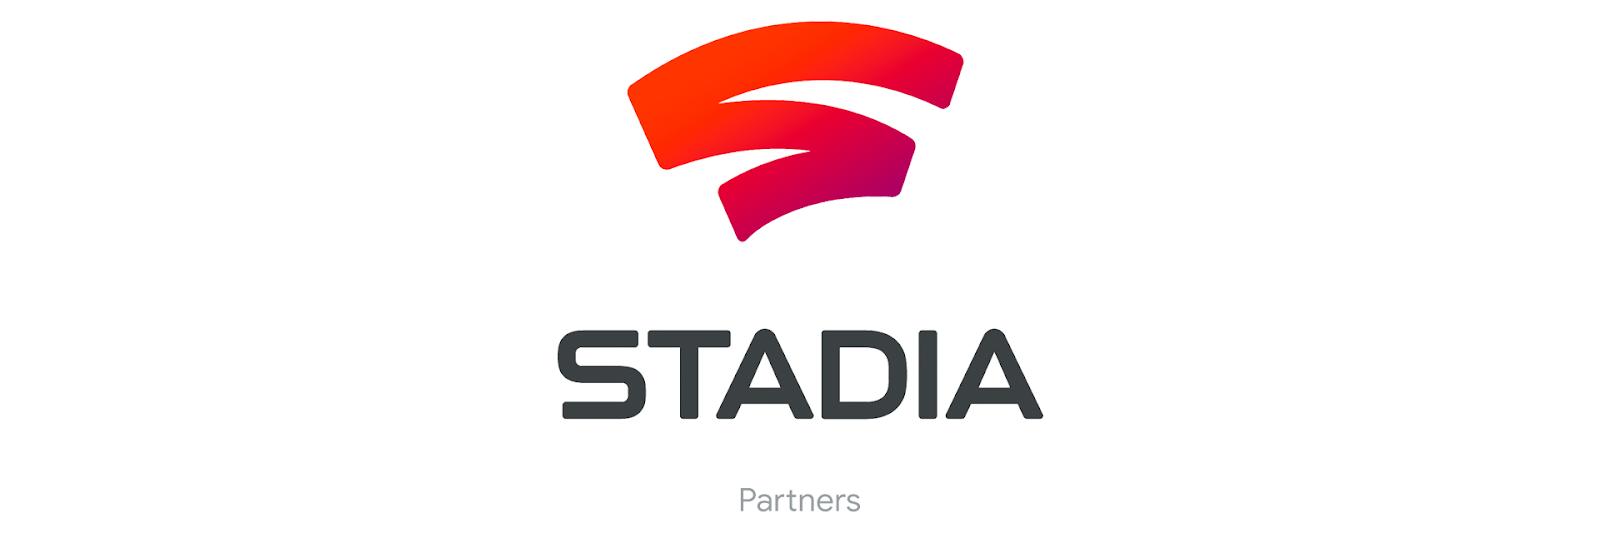 Announcing Stadia Partners; Free Development Hardware for Selected Developers Image